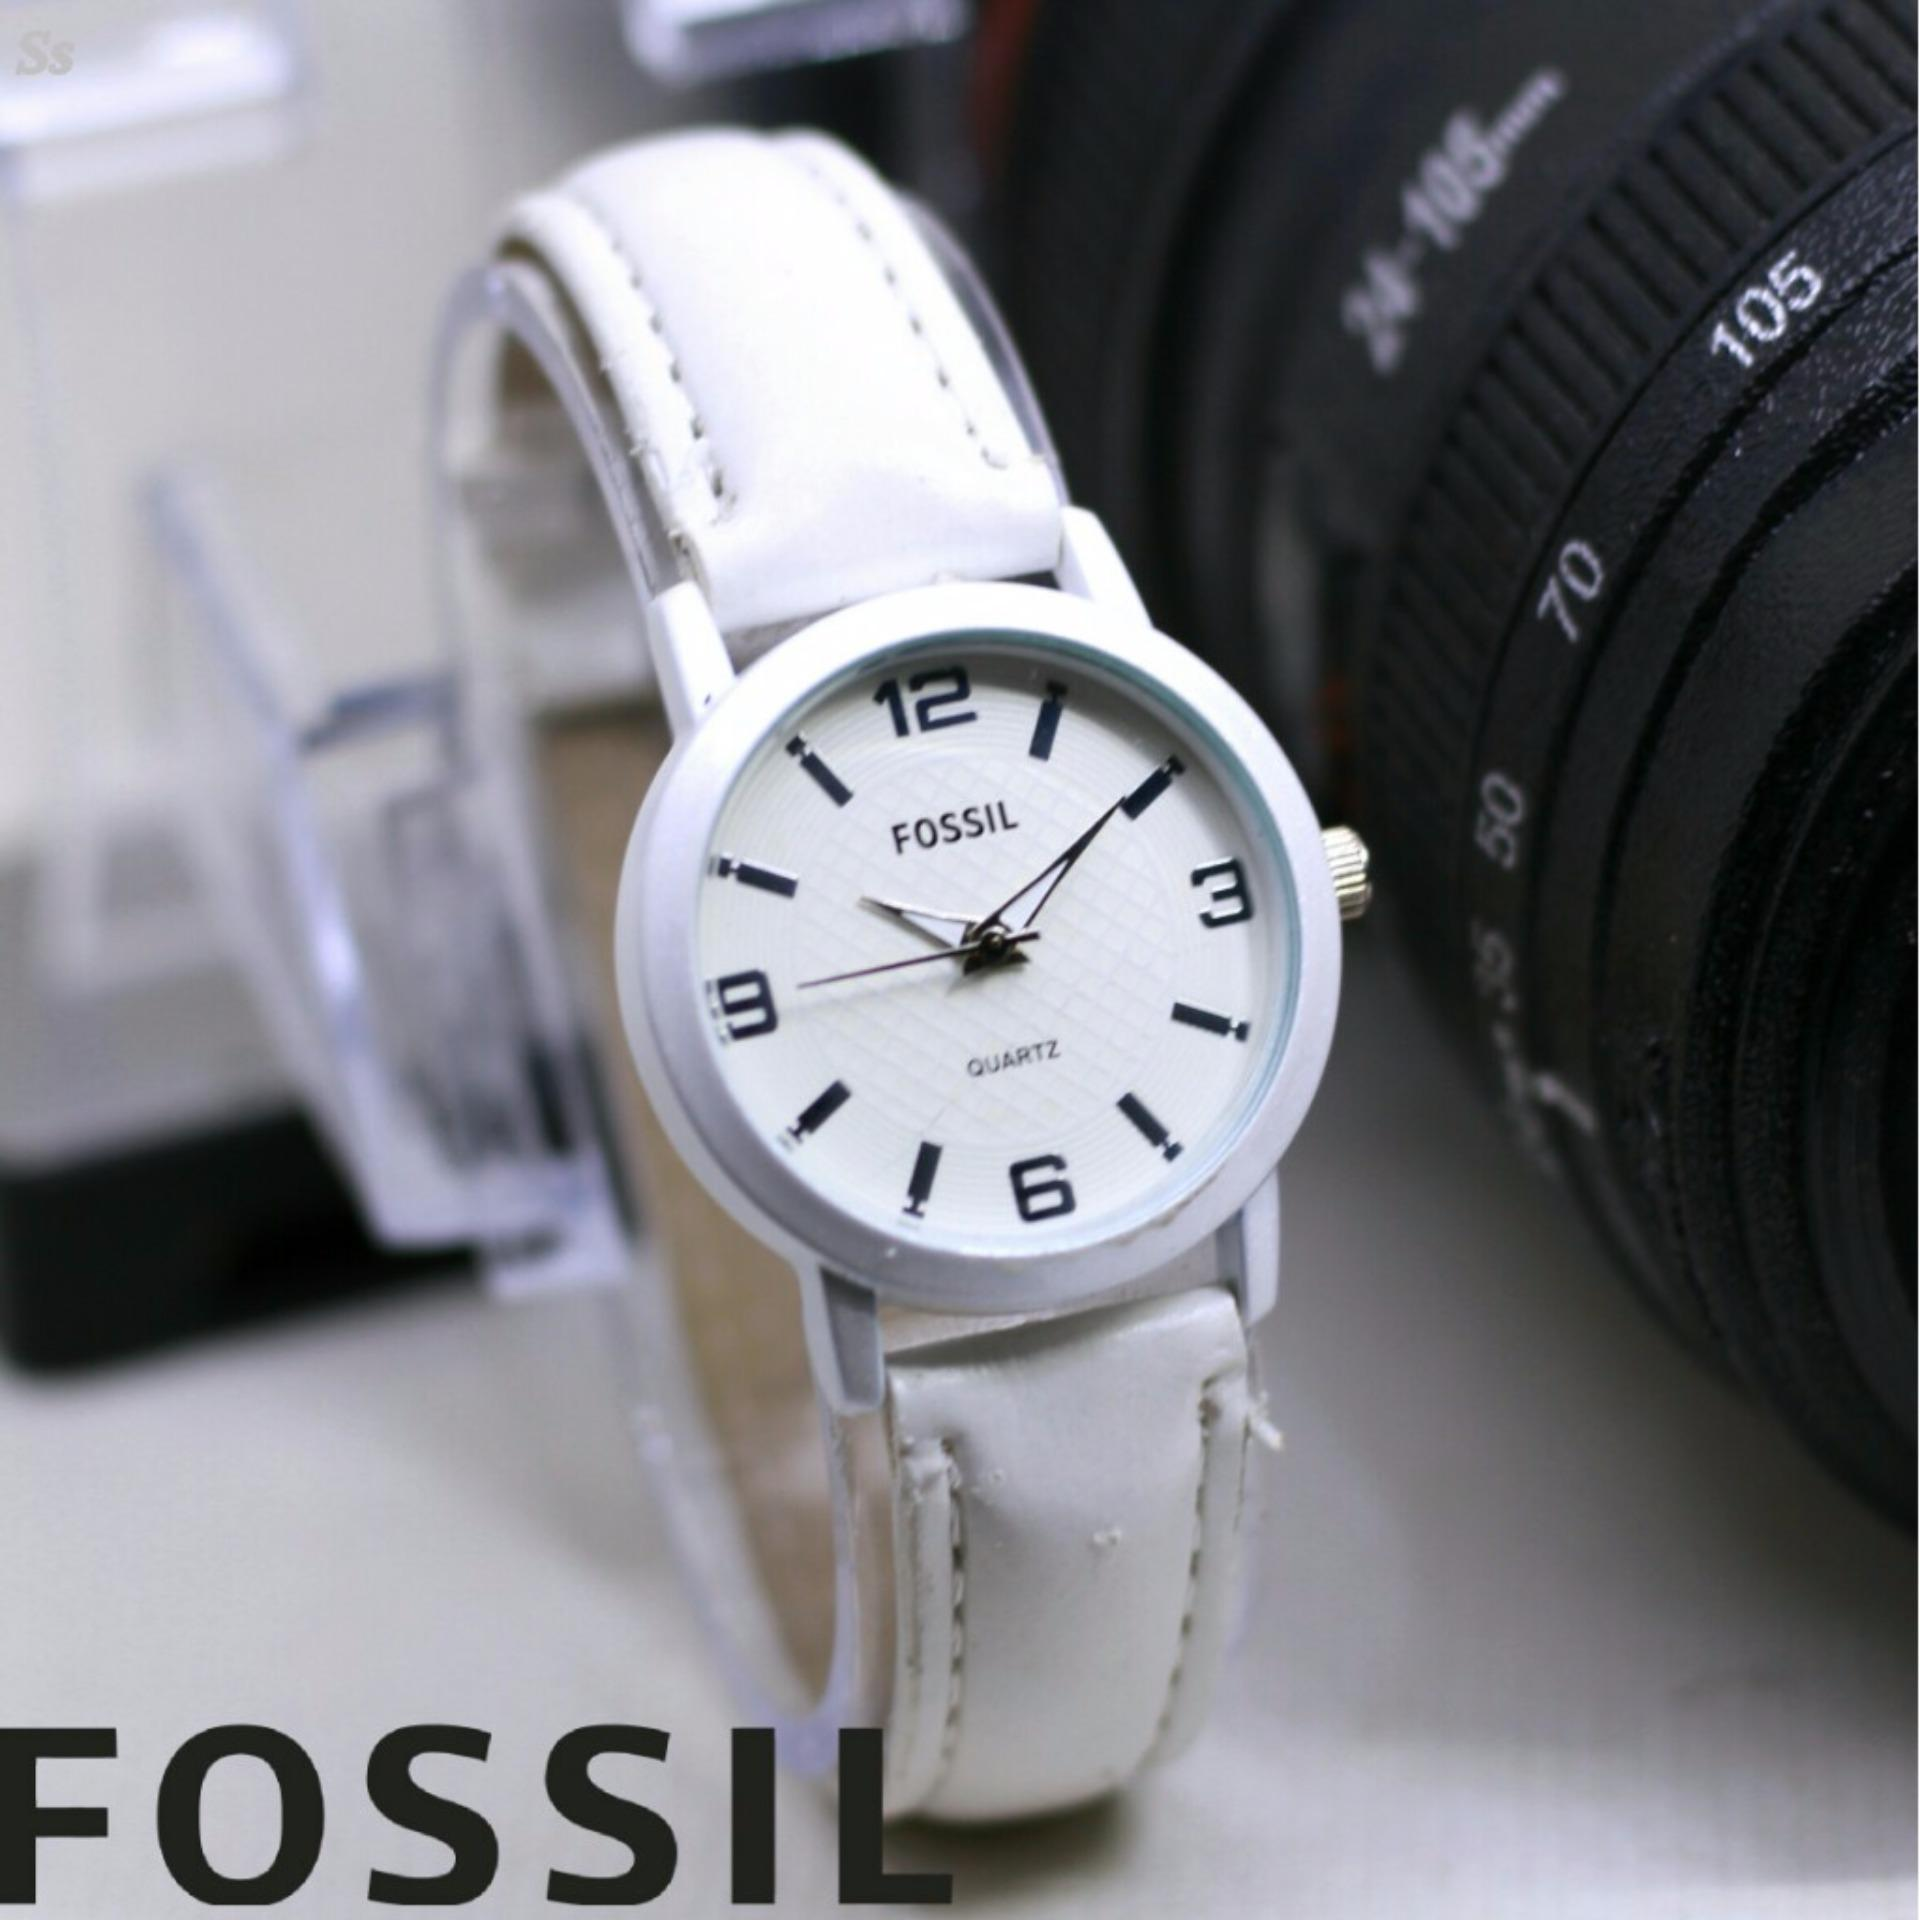 Fosil Jam Tangan Wanita Model Trendy Casual Leather Strap Daftar Fossil Cecile Multifunction Sand Watch Am 4532